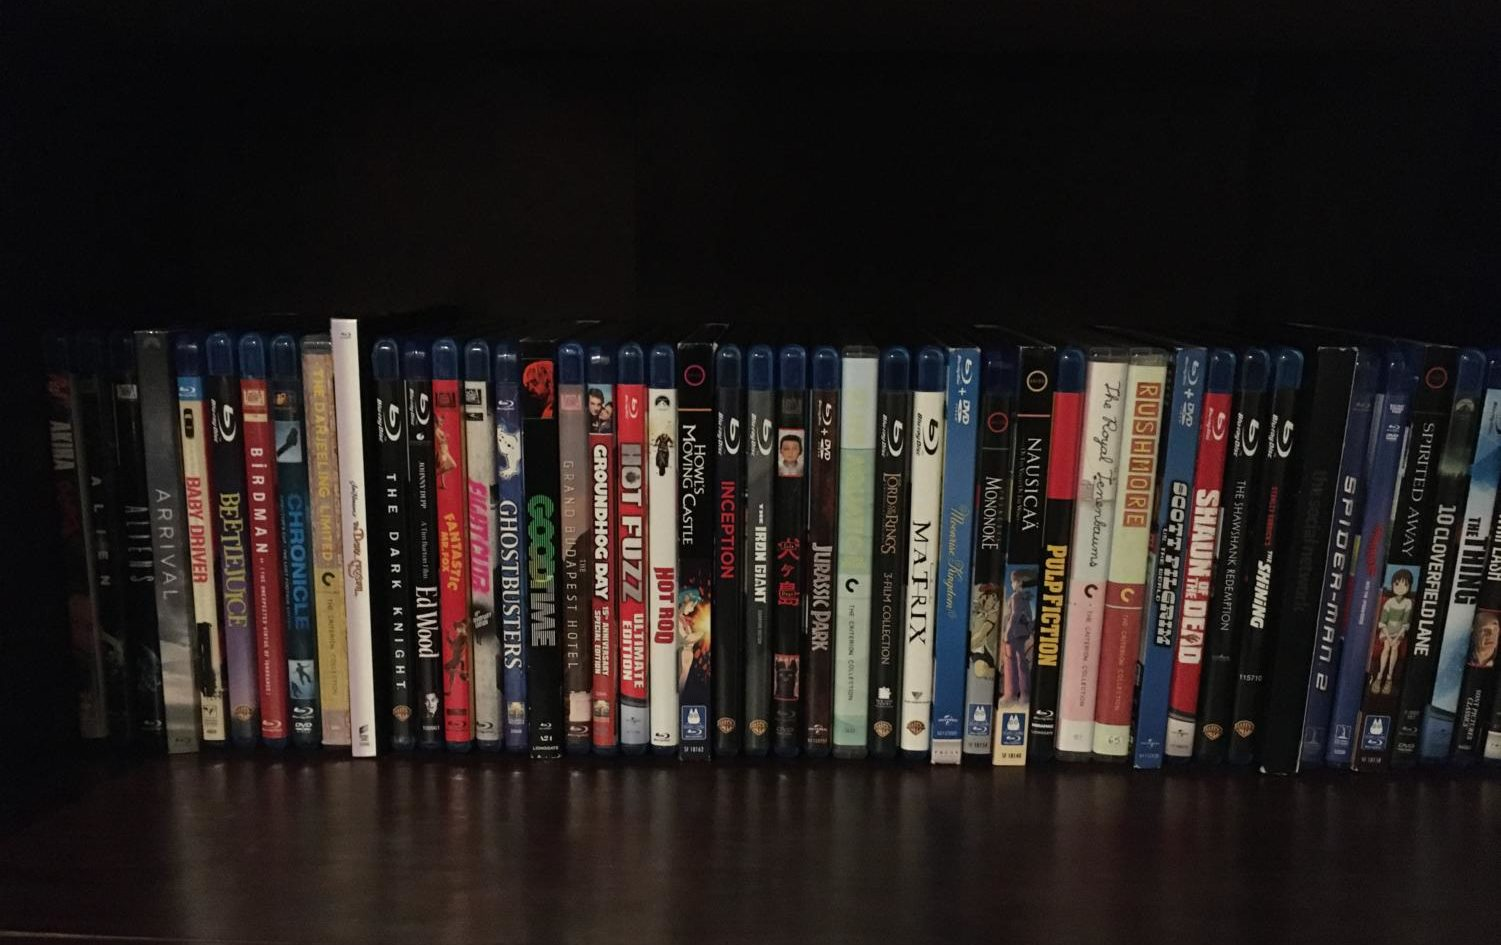 My personal collection. I have bought myself around 50 movies, a lot of them you can get cheap if you buy used.